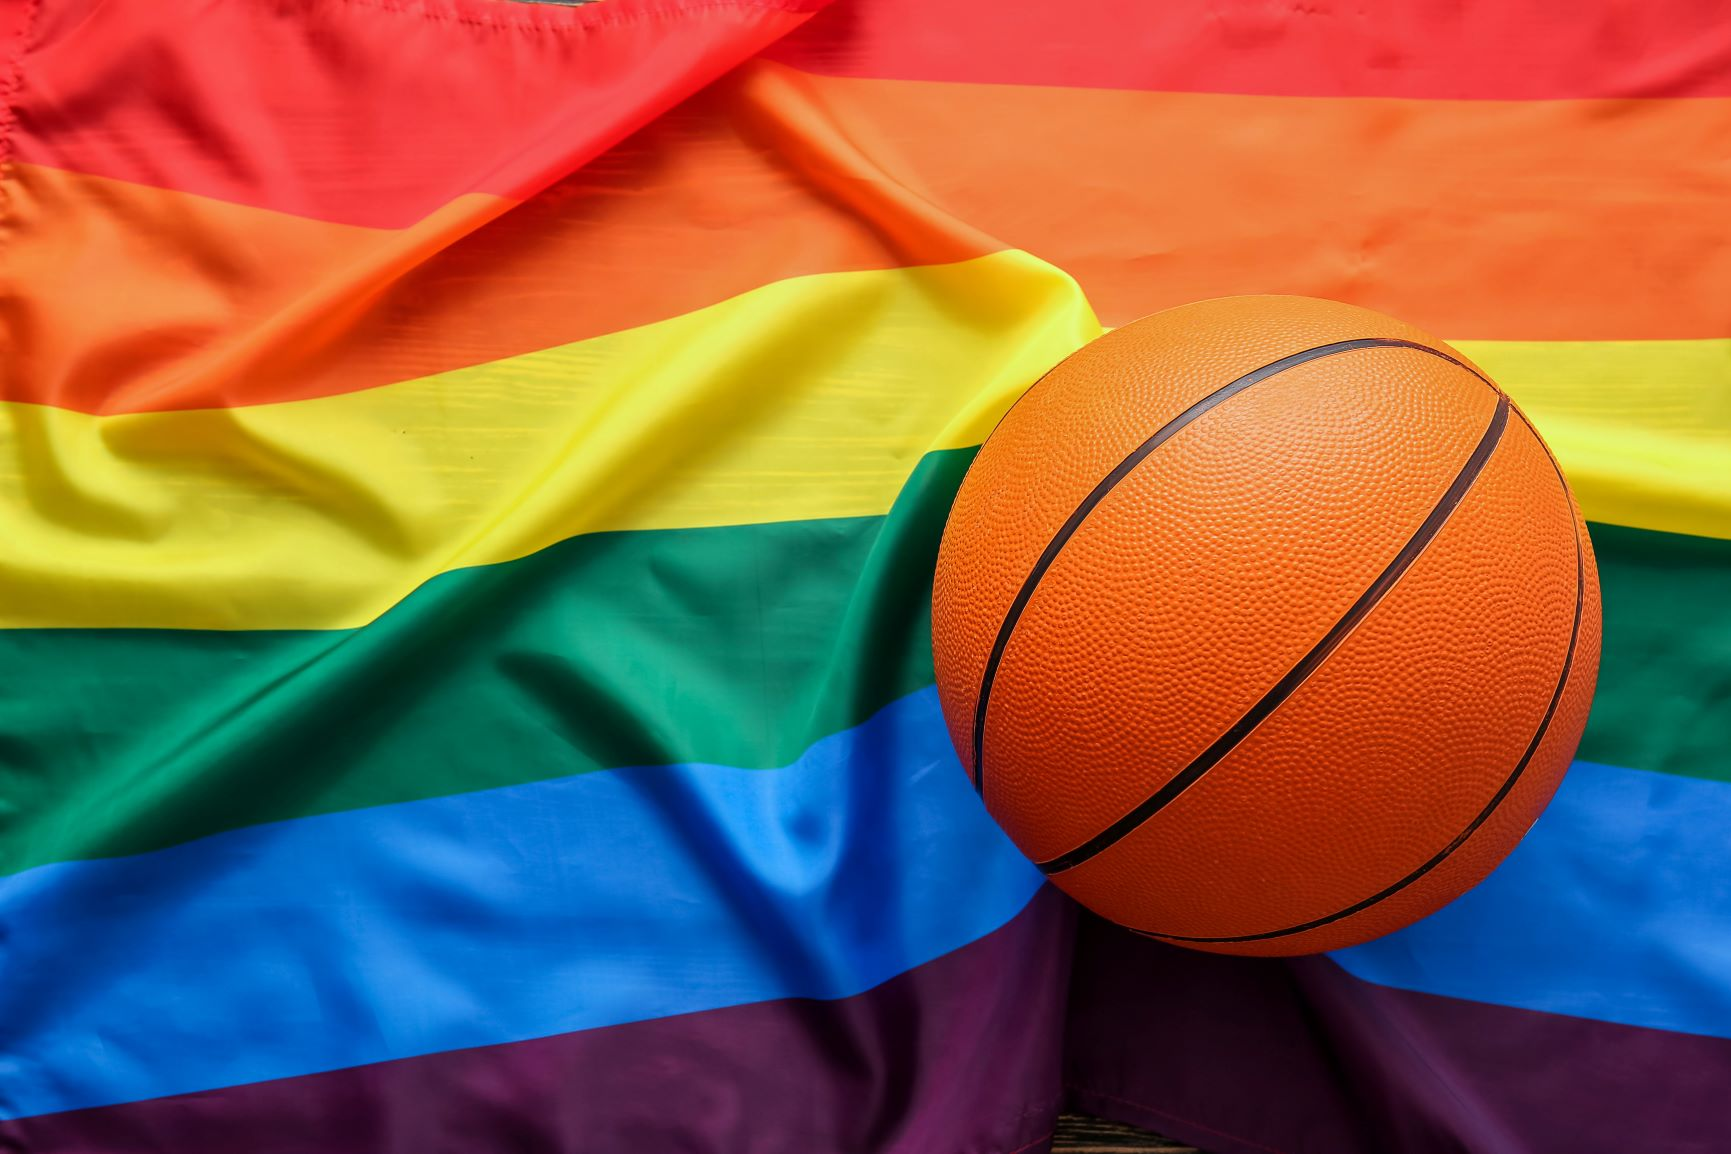 Basketball ball against lgbt rainbow flag